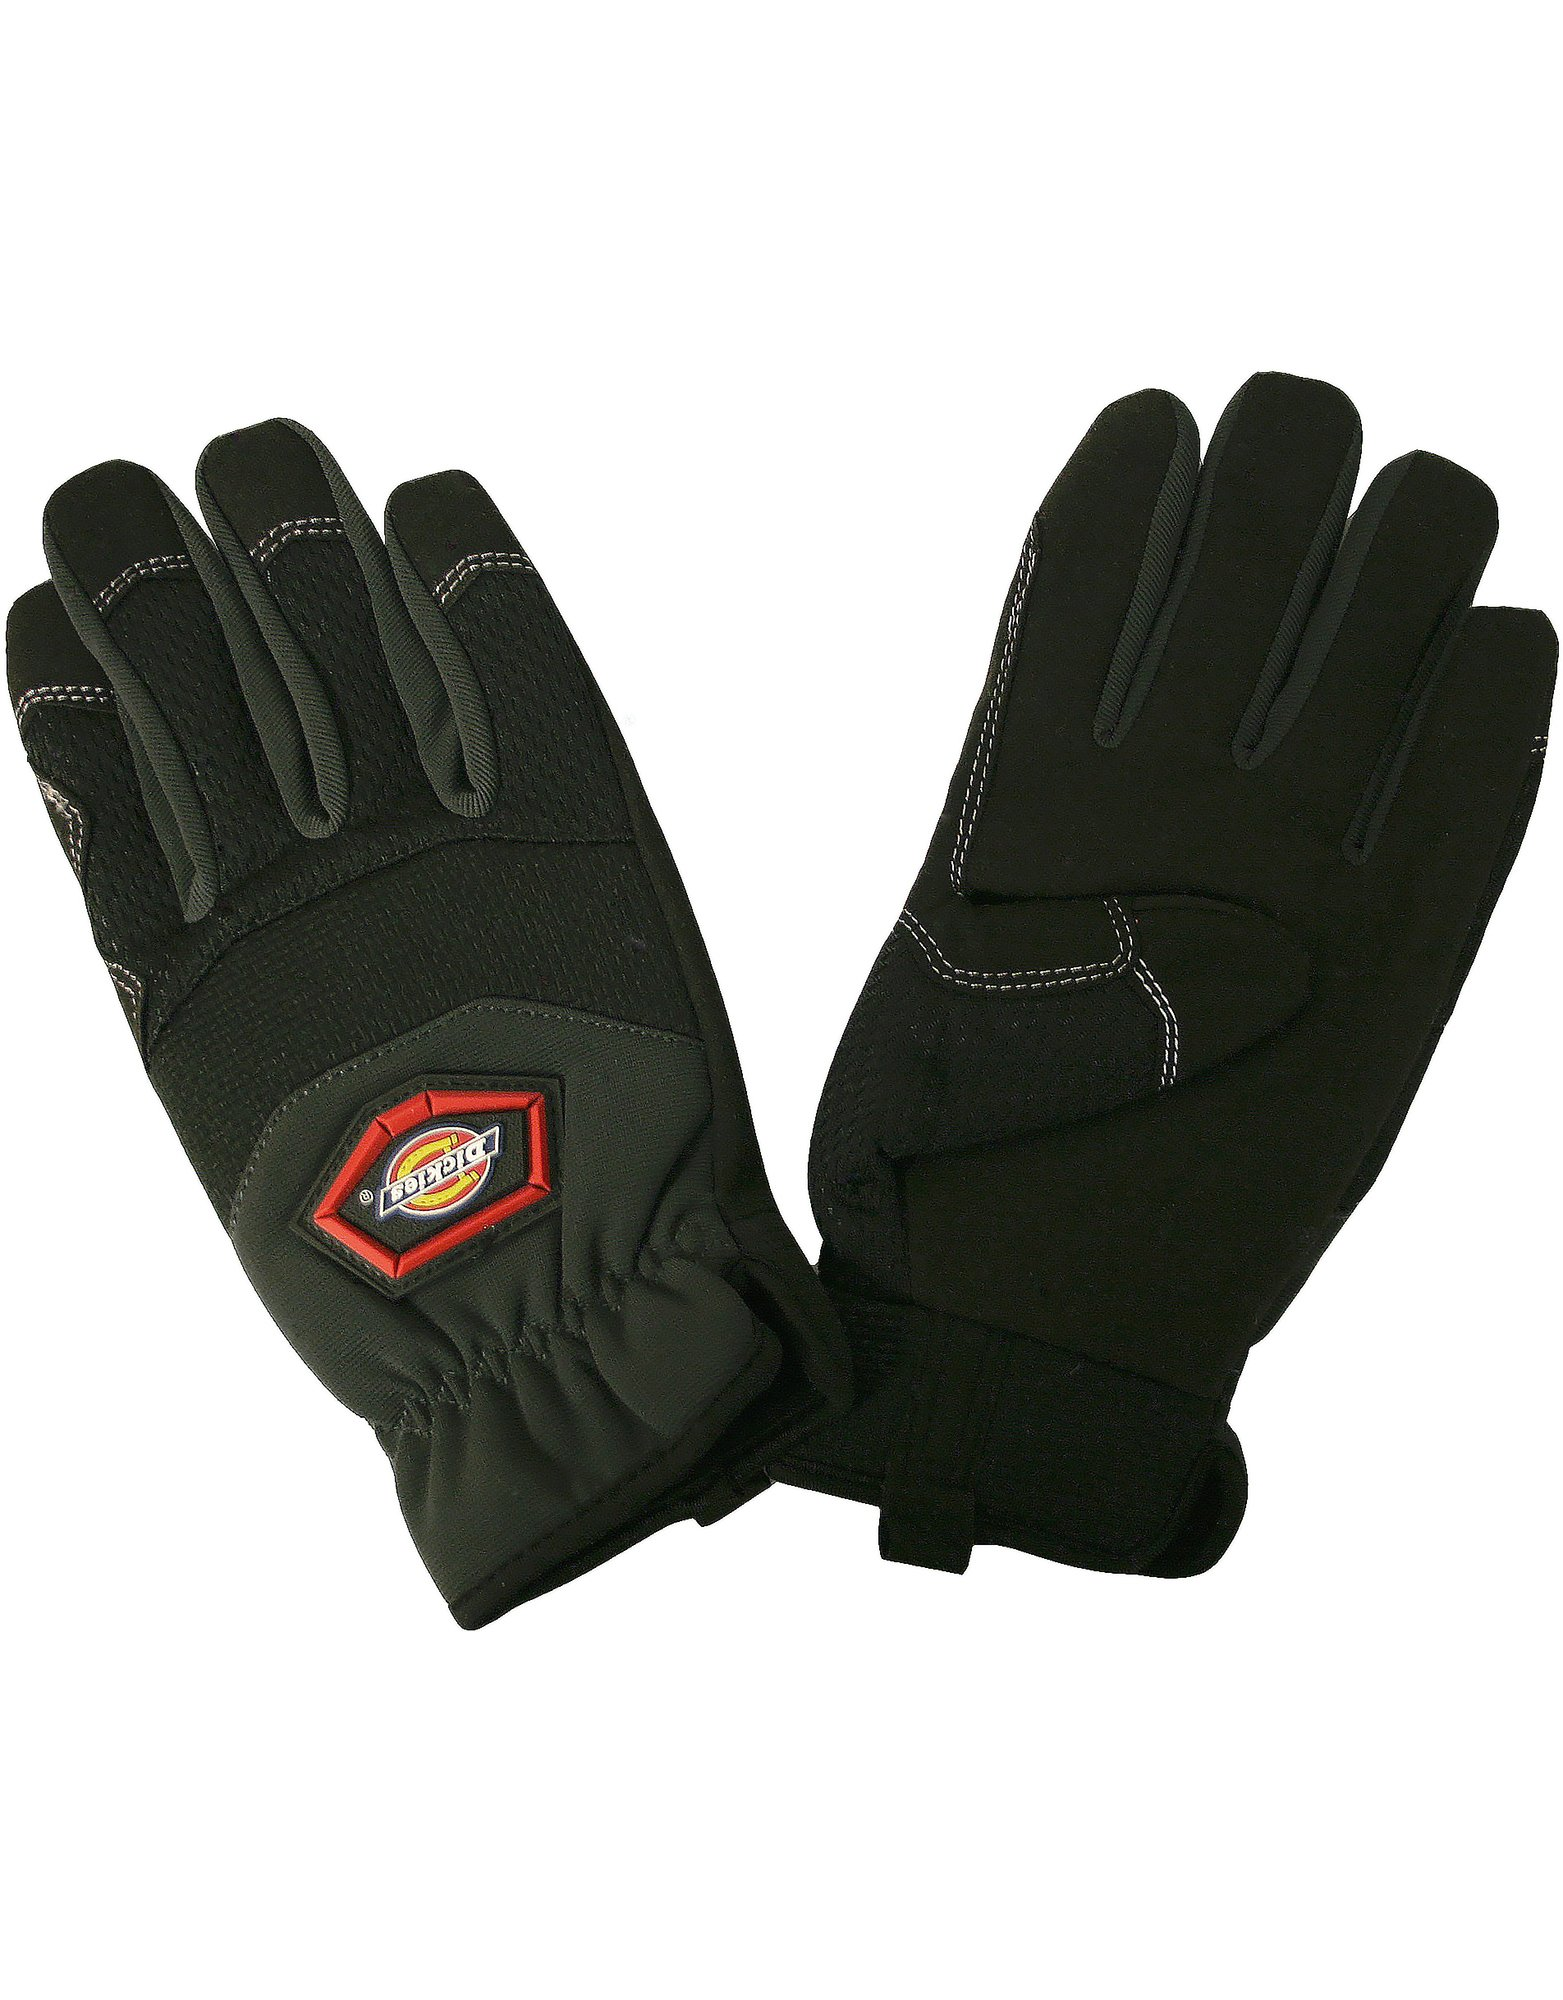 Mechanics Gloves, Comfort Grip, Medium - Gray (GY)